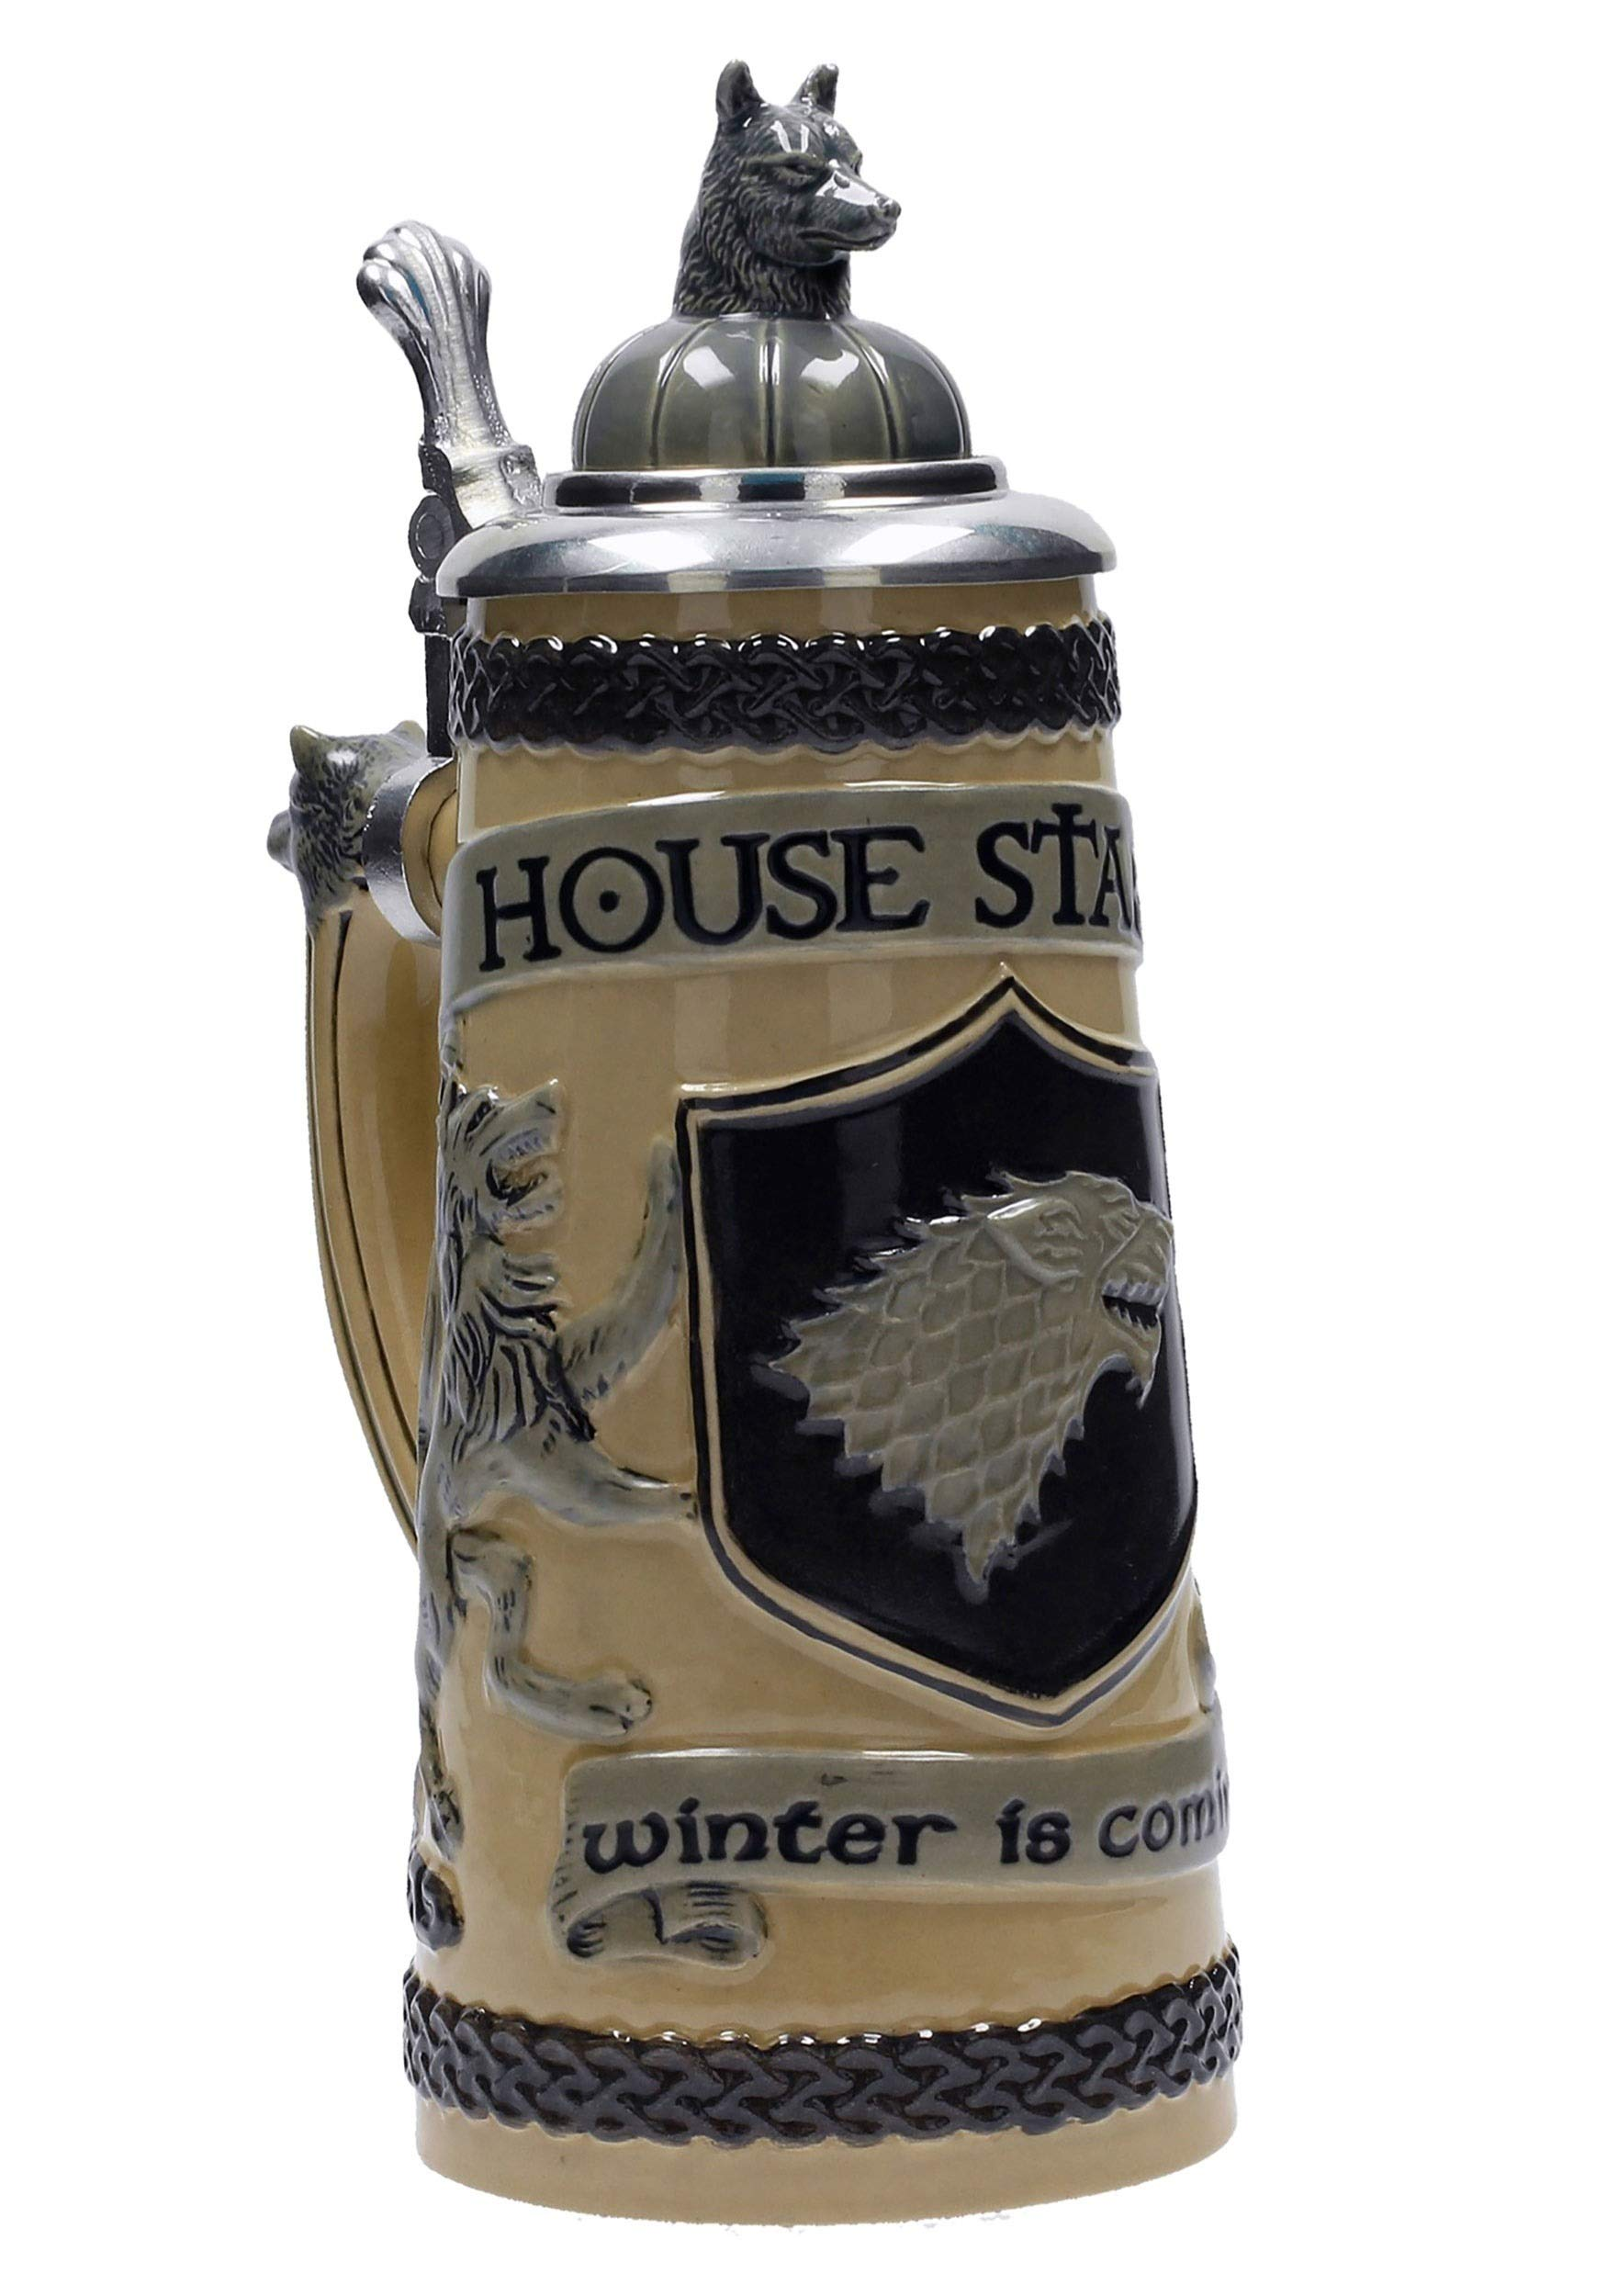 Game of Thrones House Stark Beer Stein | Collectible Authentic Ceramic Drinking Mug | 22 Ounces by SD Toys Merchandising (Image #2)